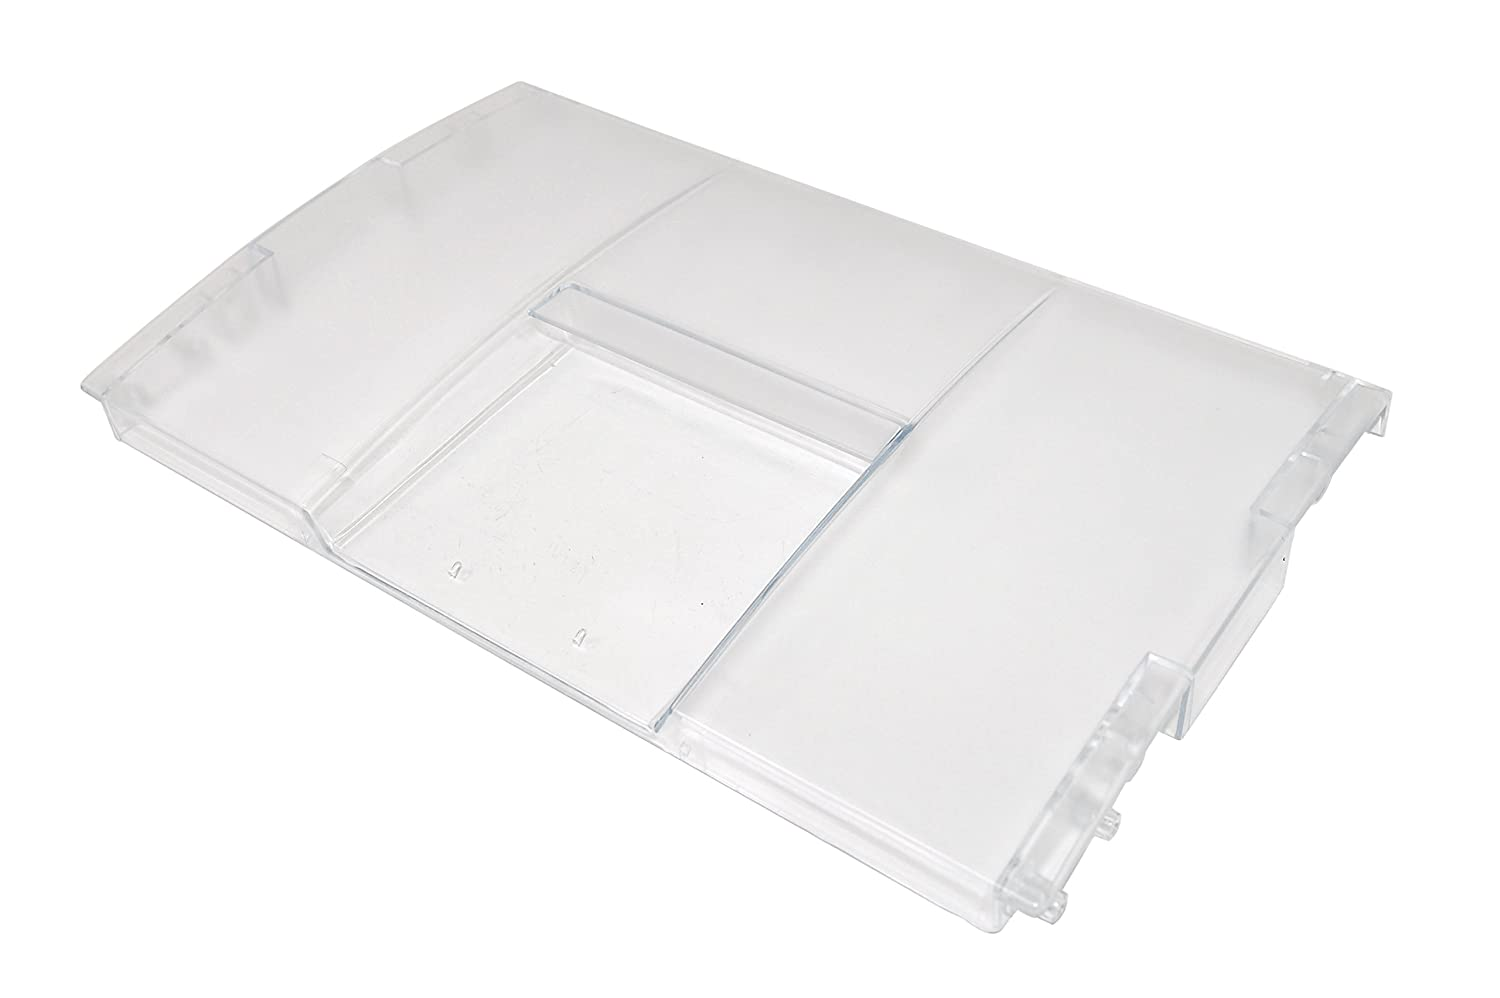 Beko Freezer Front Drawer Cover [Energy Class A+++] Beko Group 4331793600